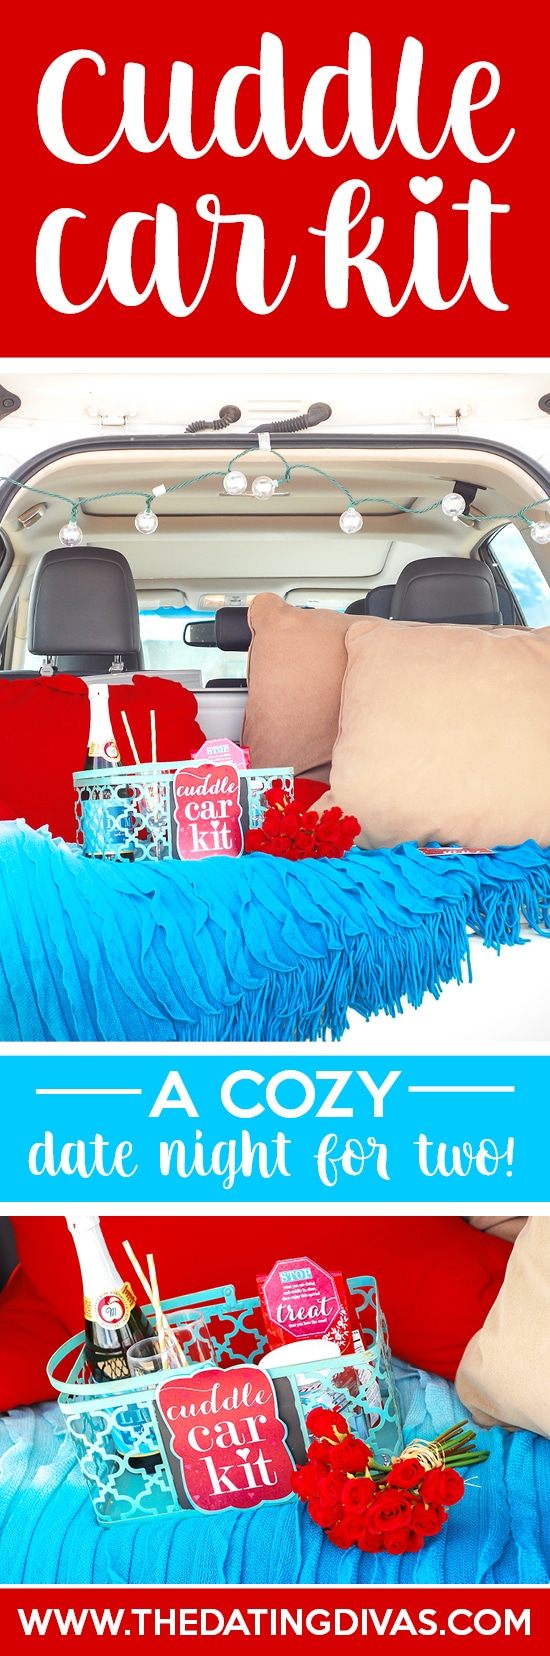 Cuddle Car Kit: An Easy Date Night Idea